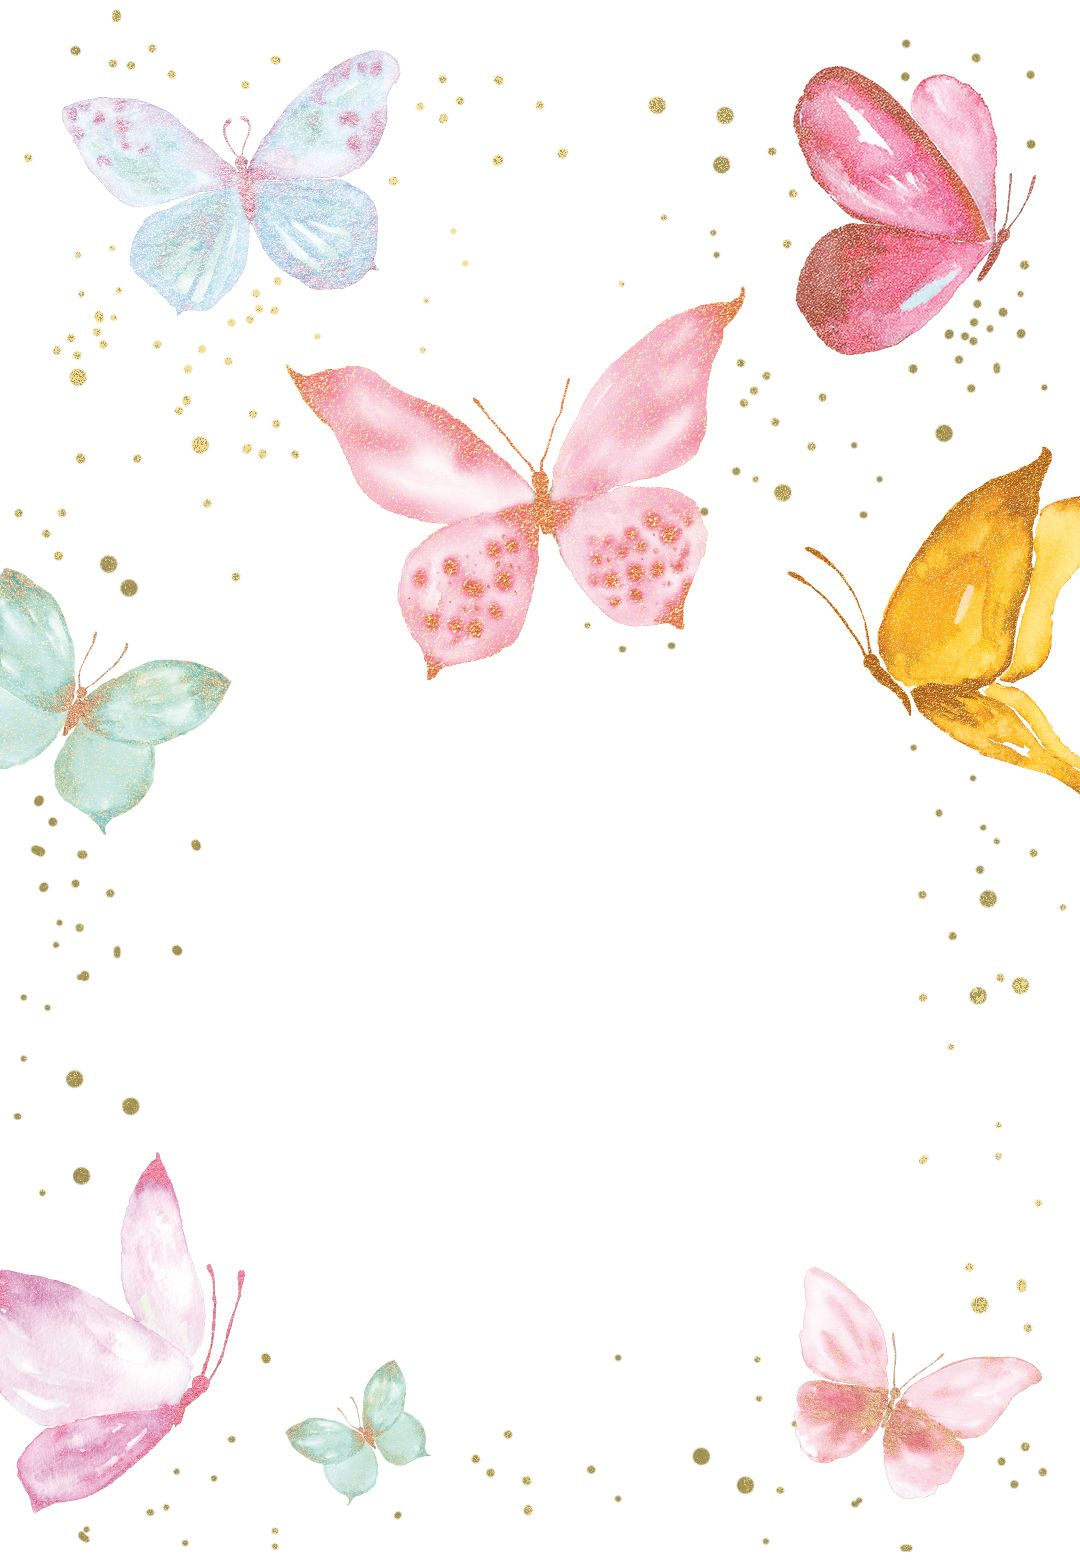 Butterfly Invitations Templates Free : butterfly, invitations, templates, Magical, Butterflies, Birthday, Invitation, Template, (free), Greetings, Island, Butterfly, Invitations,, Templates